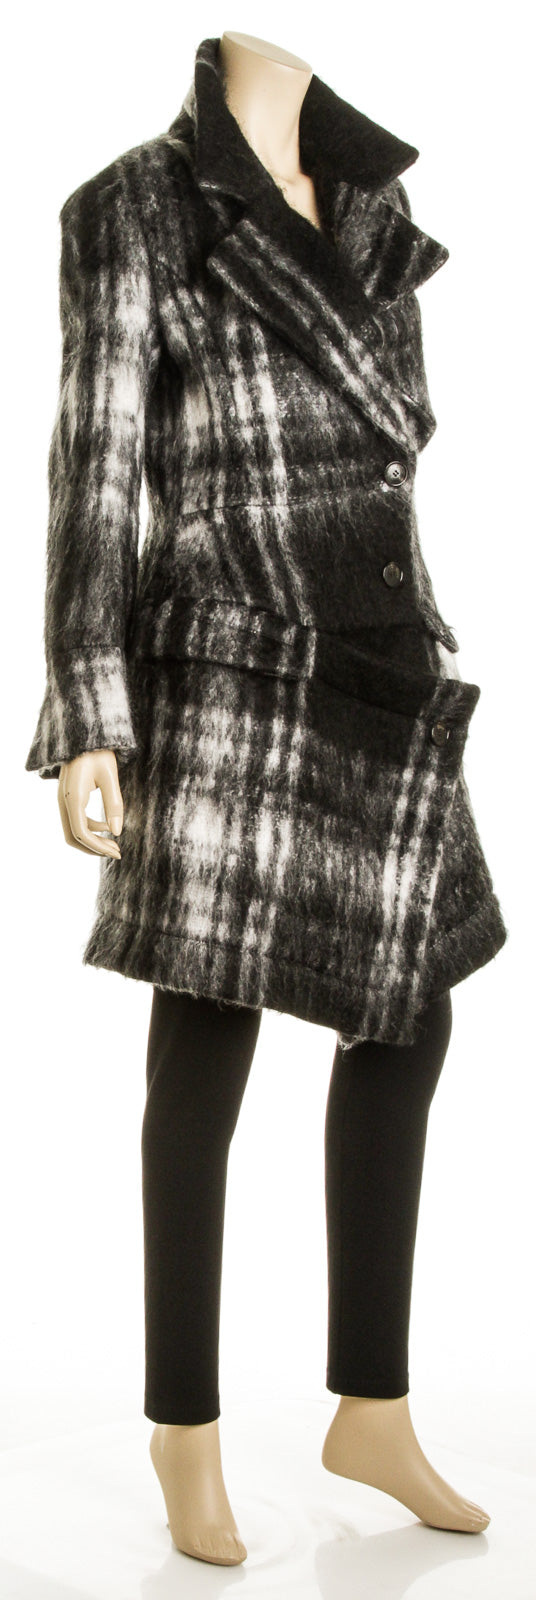 Christian Dior Black and White Plaid Mohair Oversize Coat (Size 38)